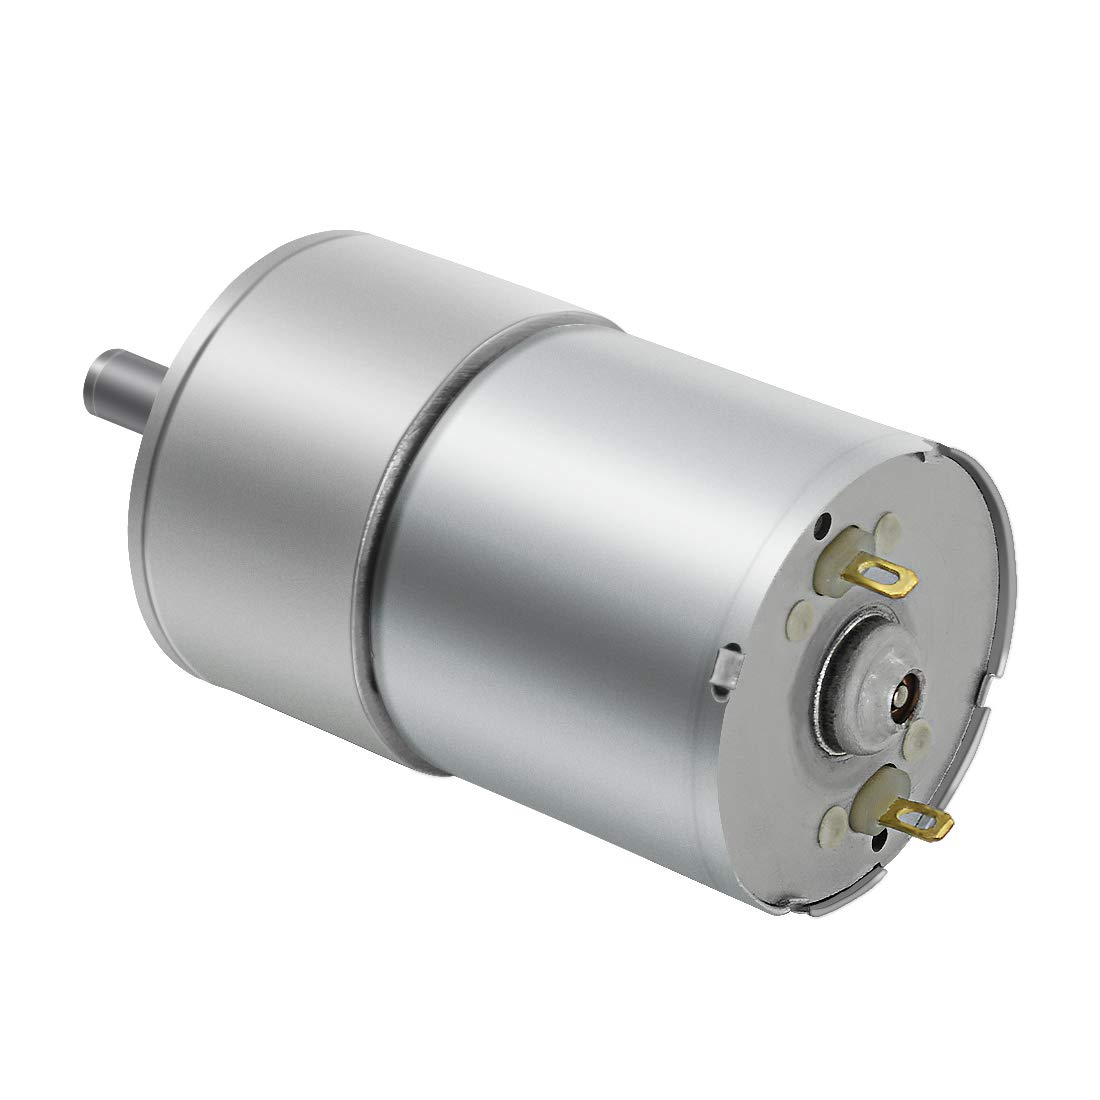 with Metal Reducer Gearbox 12V//50RPM Centric Output Shaft 37mm Diameter LMioEtool DC Electric Gear Motor High Torque Reversible Mini Speed Reduction Geared Motor